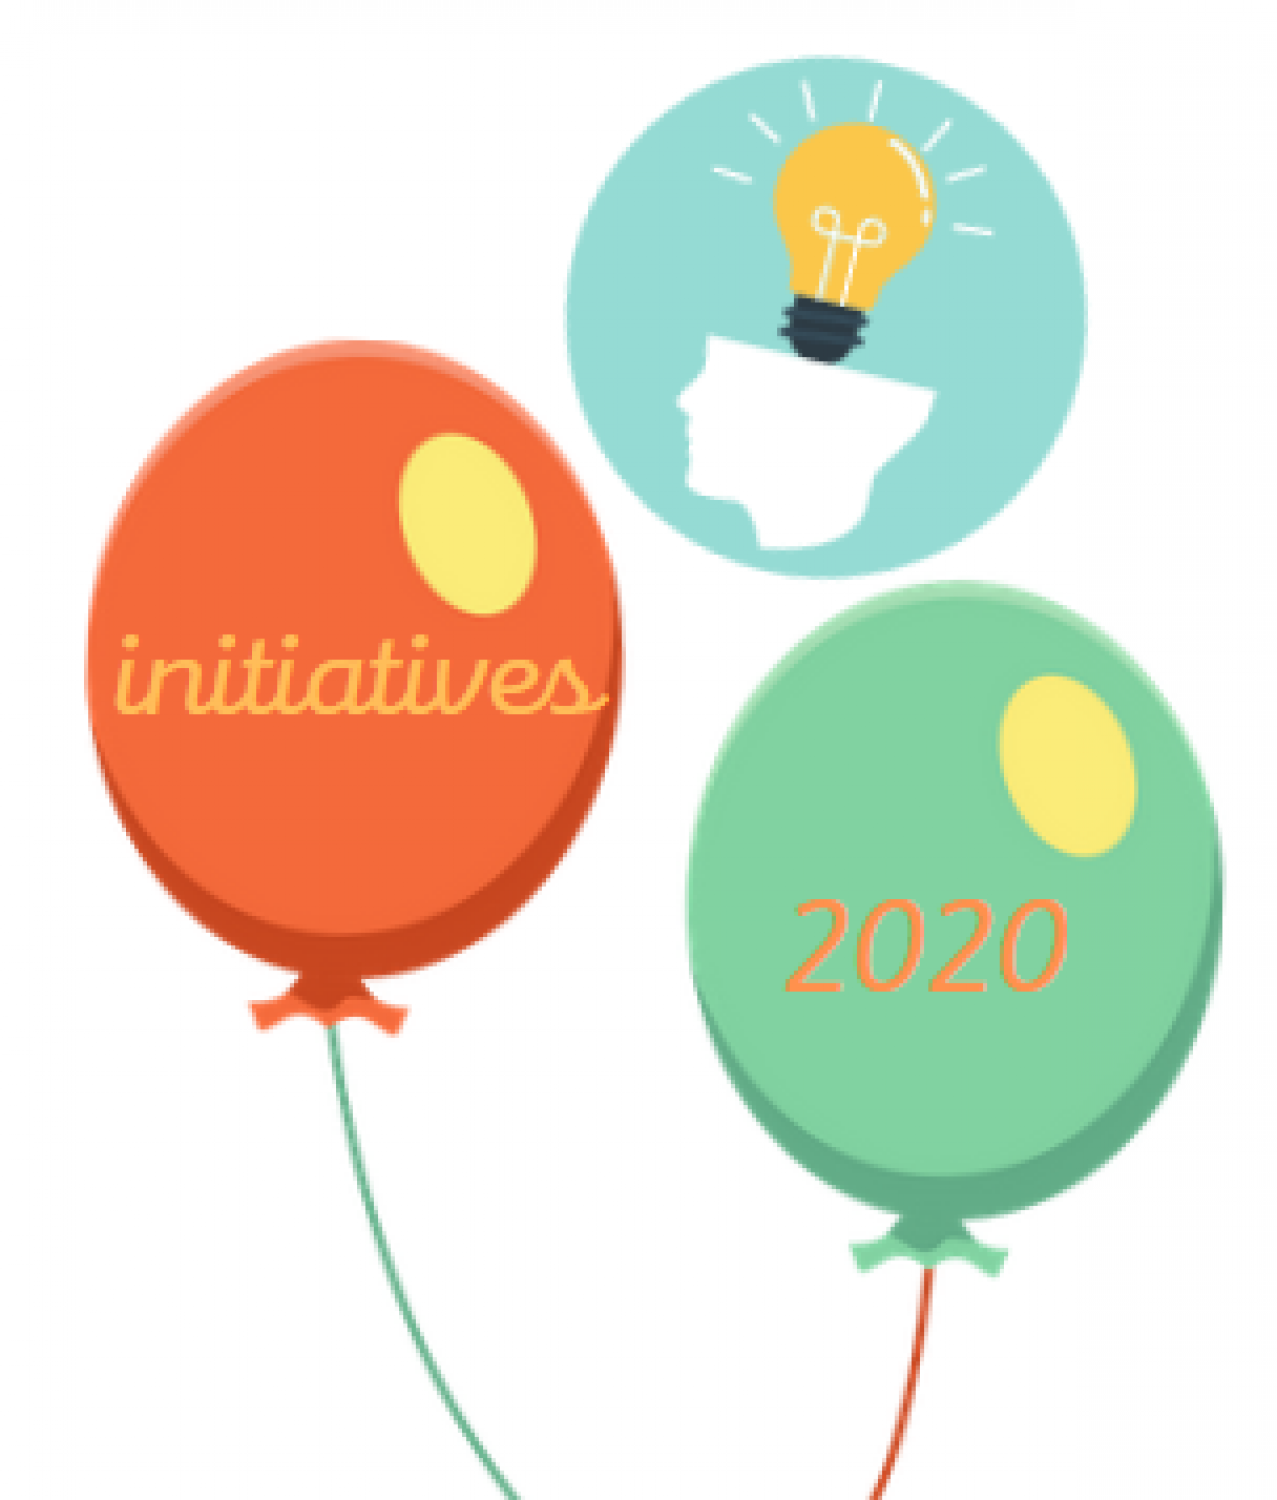 20201221115517-initiatives-2020.png